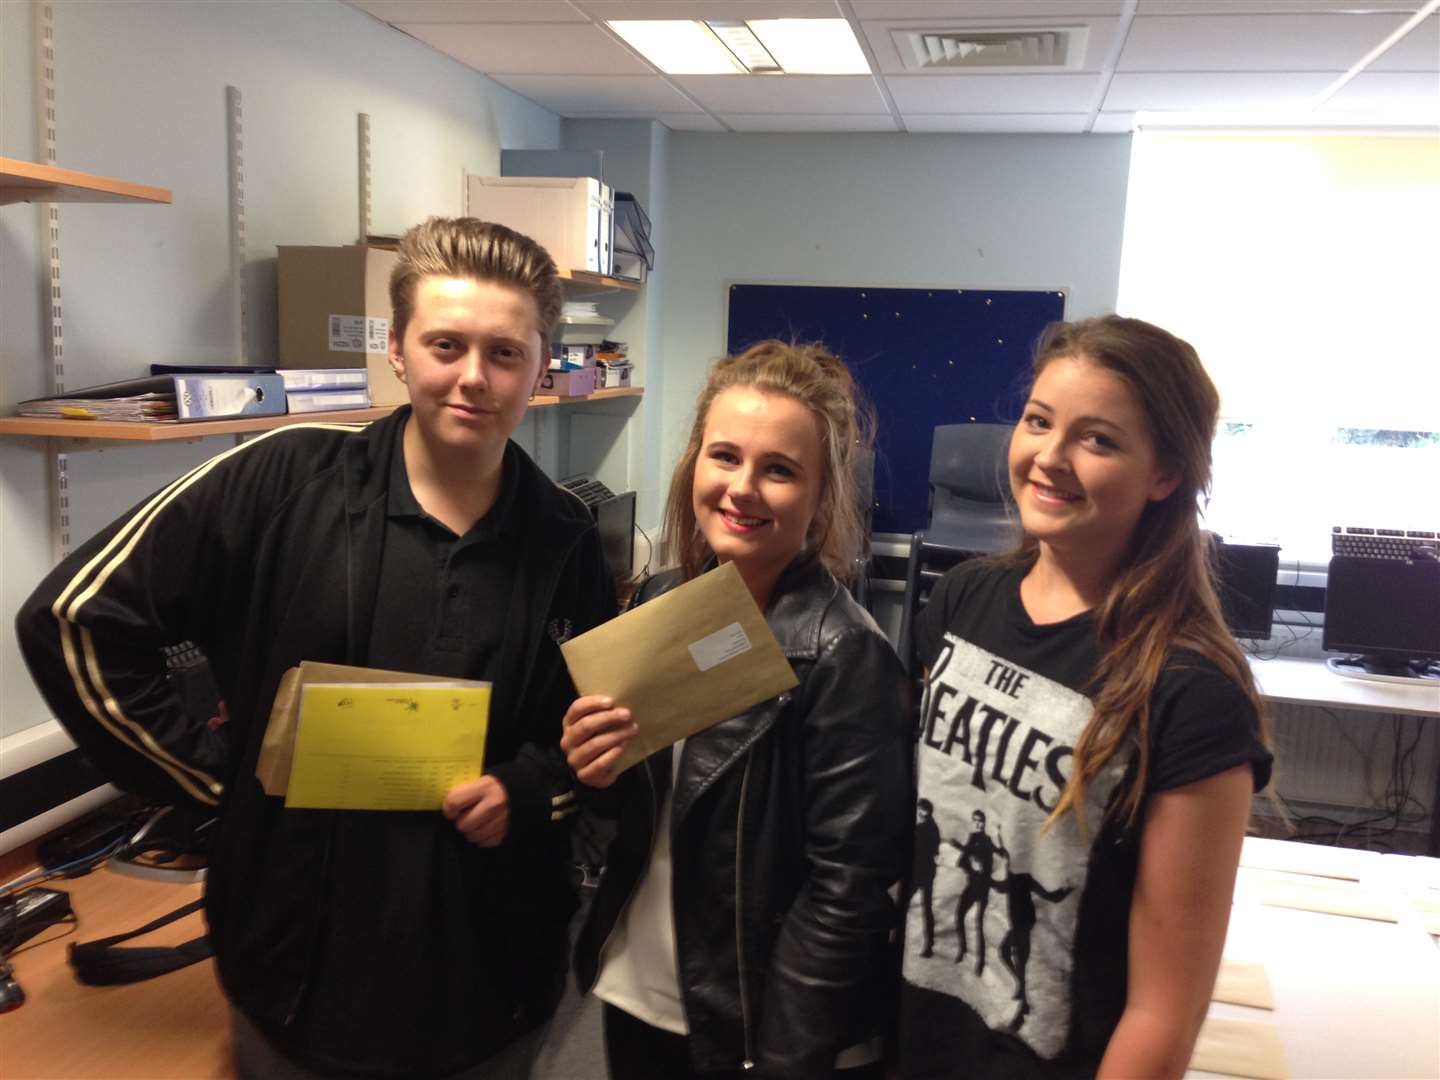 Northfleet School for Girls students Jack Fish, Ginnie Jackson and Aimee Anthony